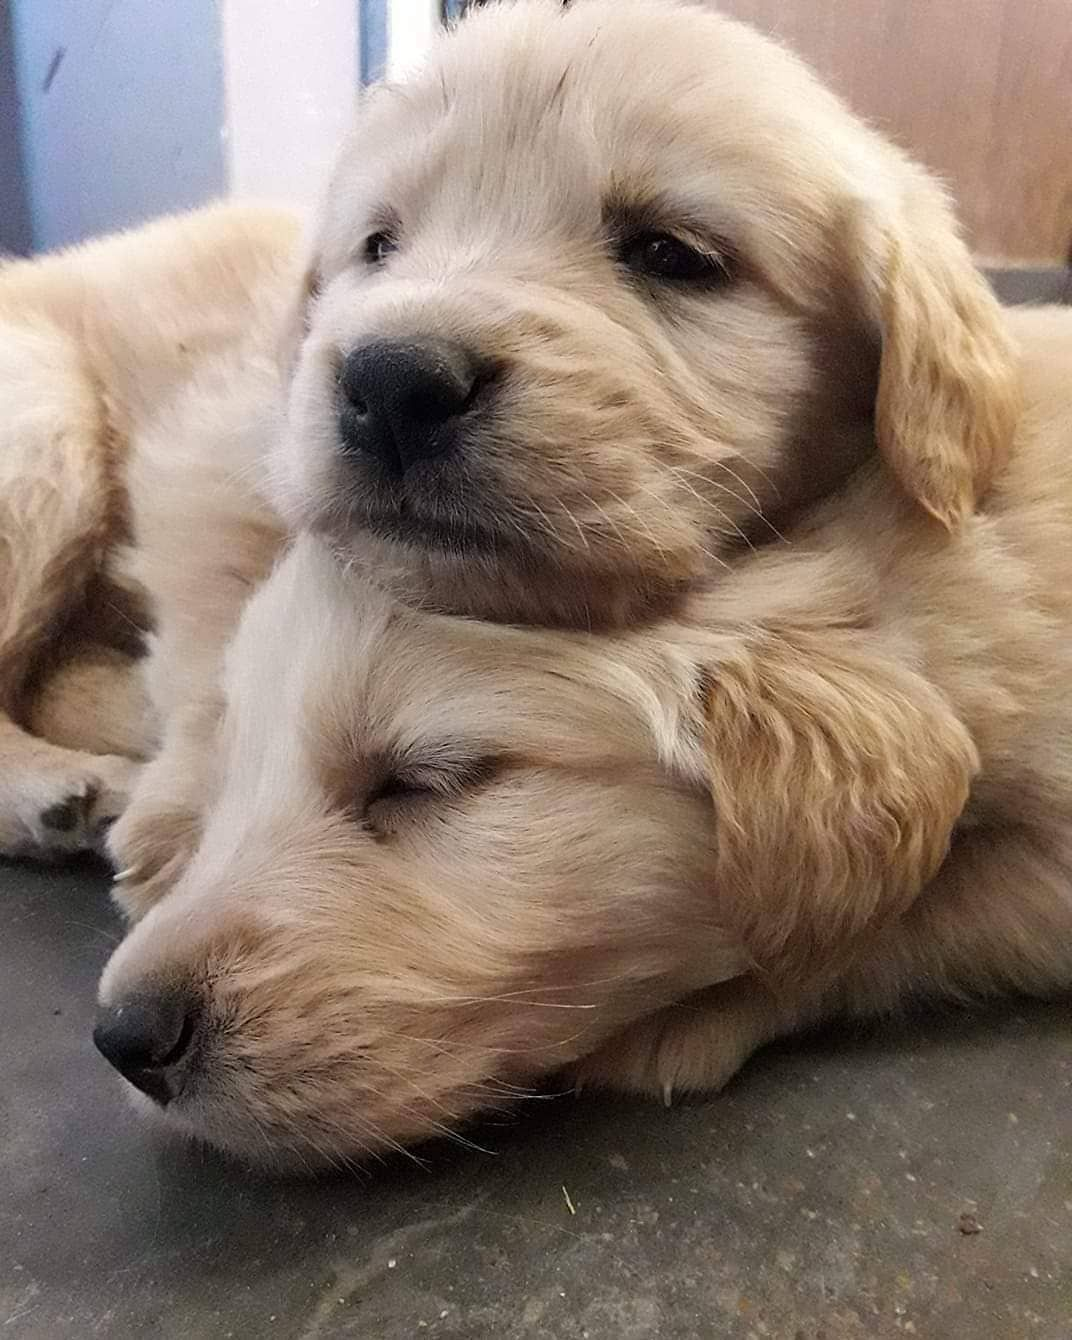 Dog Idea Dog Homes Dog And Baby Dog Projects Dog Cat Dog Ate Dog Home Ideas Home Dog Dog And Puppy Puppy Dog Dog Cute Dog Dogs Love Diys For Dogs 2020